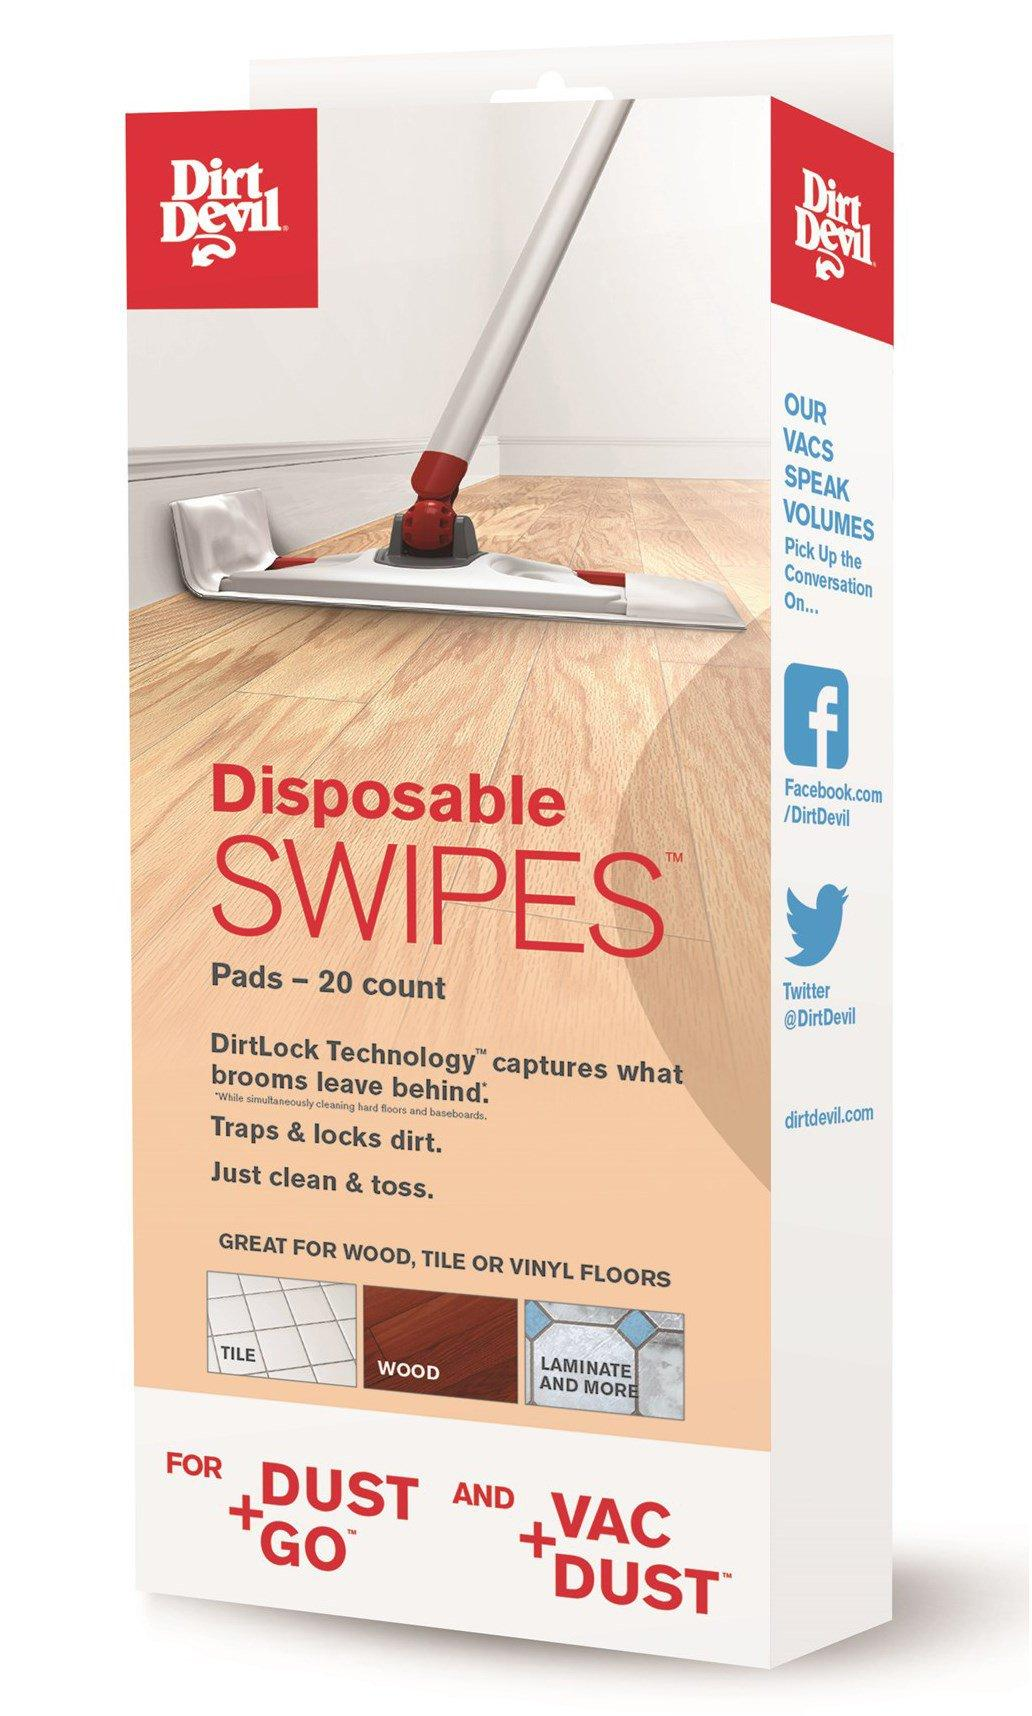 Disposable SWIPES Pads for Vac+Dust & Dust+Go (20 count)2